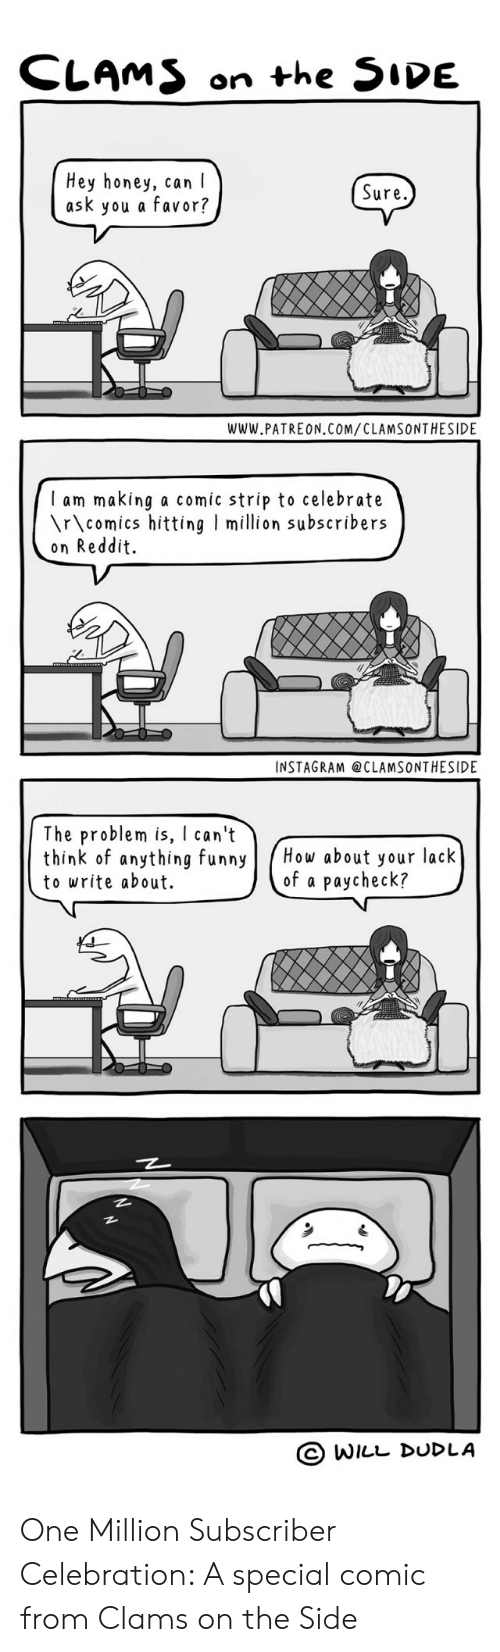 I Ask You: CLAMS on the 5IDE  Hey honey, can I  ask you a favor?  Sure,  WWW.PATREON COM/CLAMSONTHESIDE  I am making a comic strip to celebrate  \r\comics hitting I million subscribers  on Reddit  INSTAGRAM @CLAMSONTHESIDE  The problem is can't  think of anything funnyow about your lack  to write about.  of a paycheck?  O WILL DUDLA One Million Subscriber Celebration: A special comic from Clams on the Side